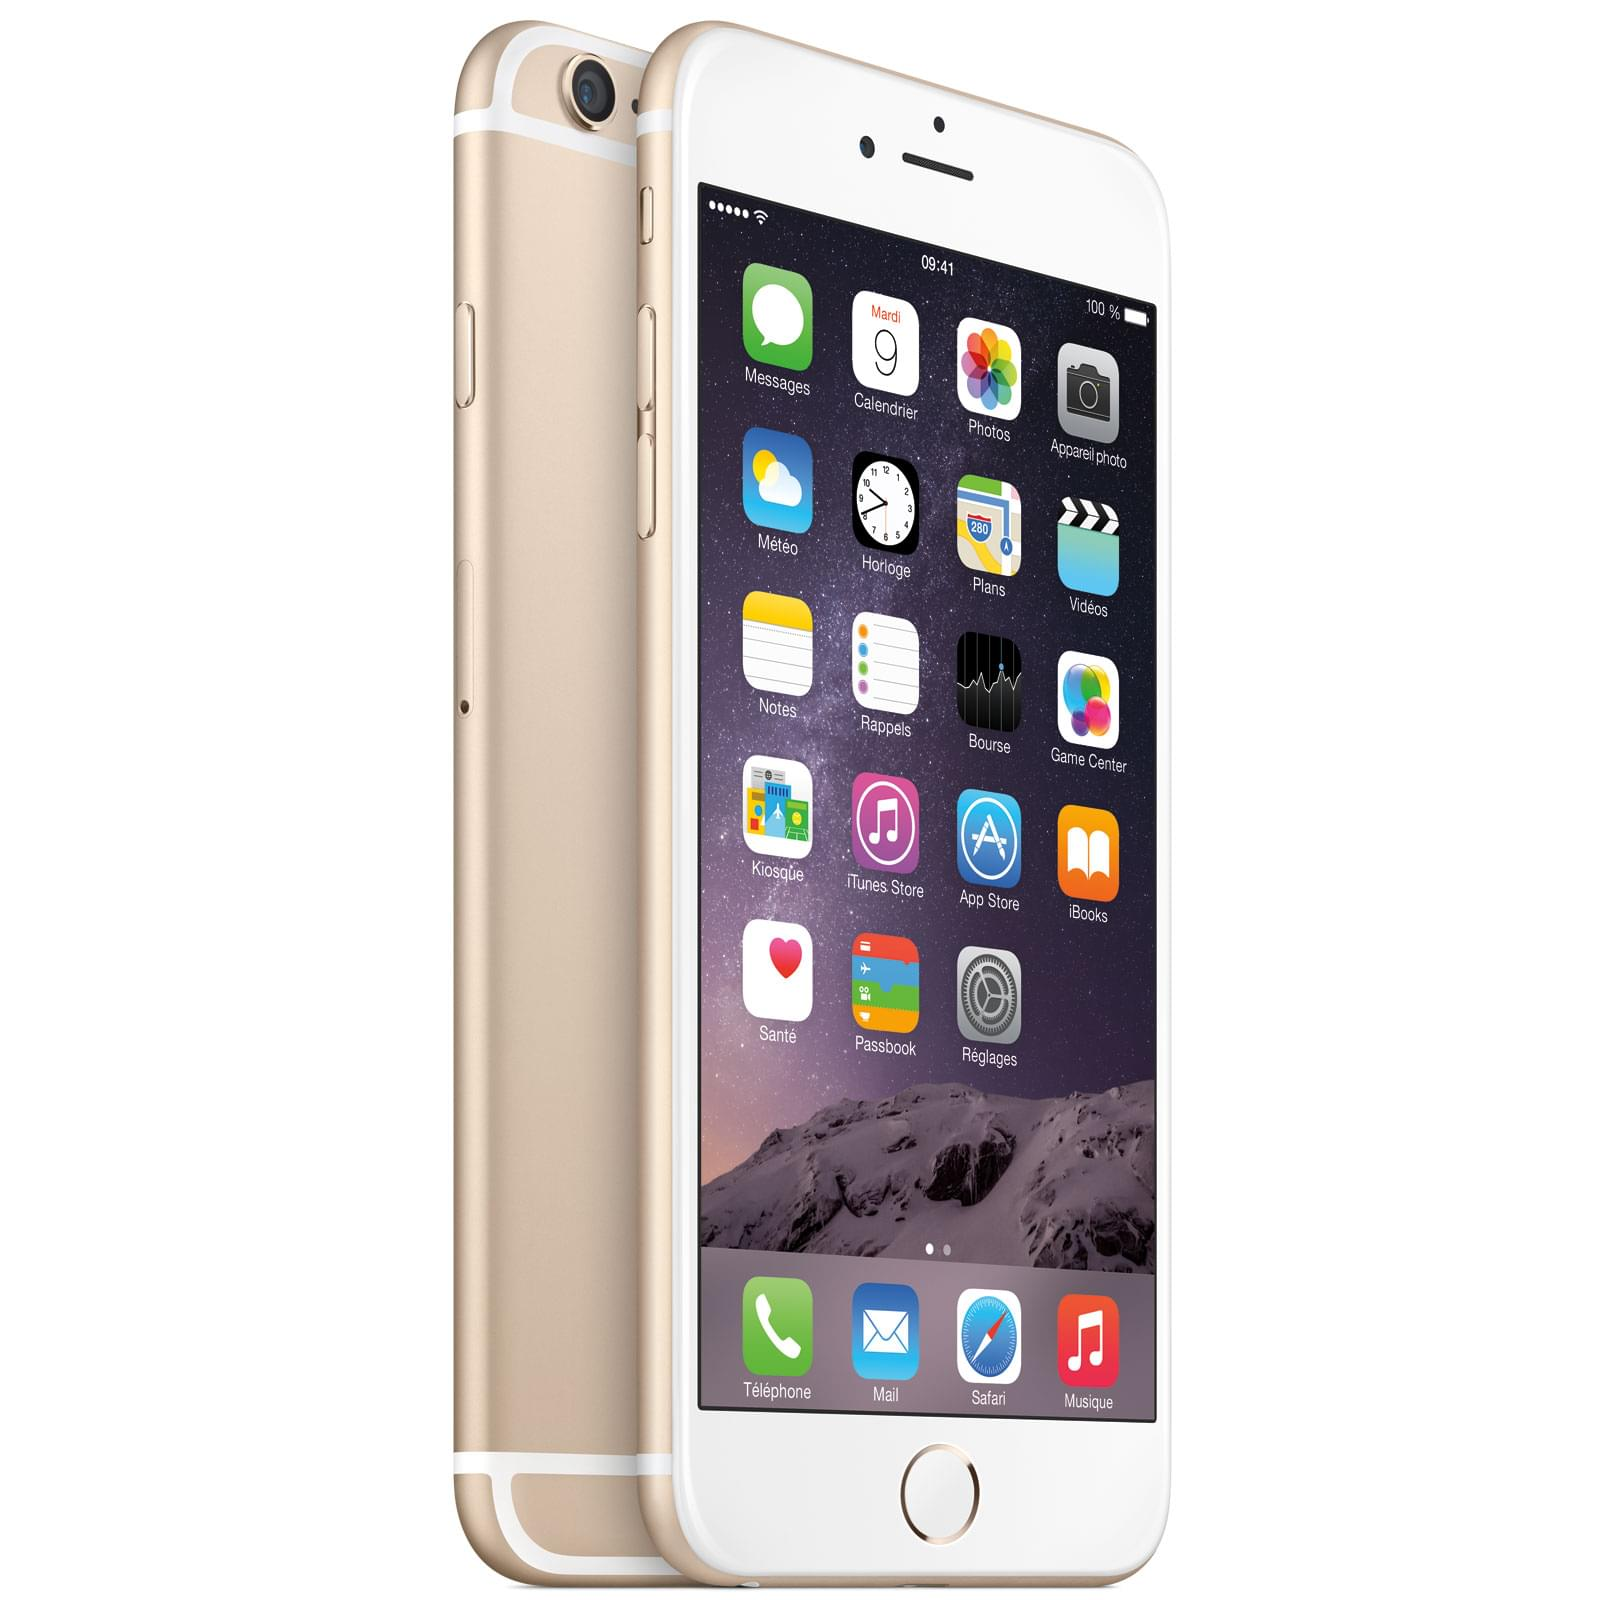 Apple iPhone 6 Plus 16Go Or - Téléphonie Apple - Cybertek.fr - 0